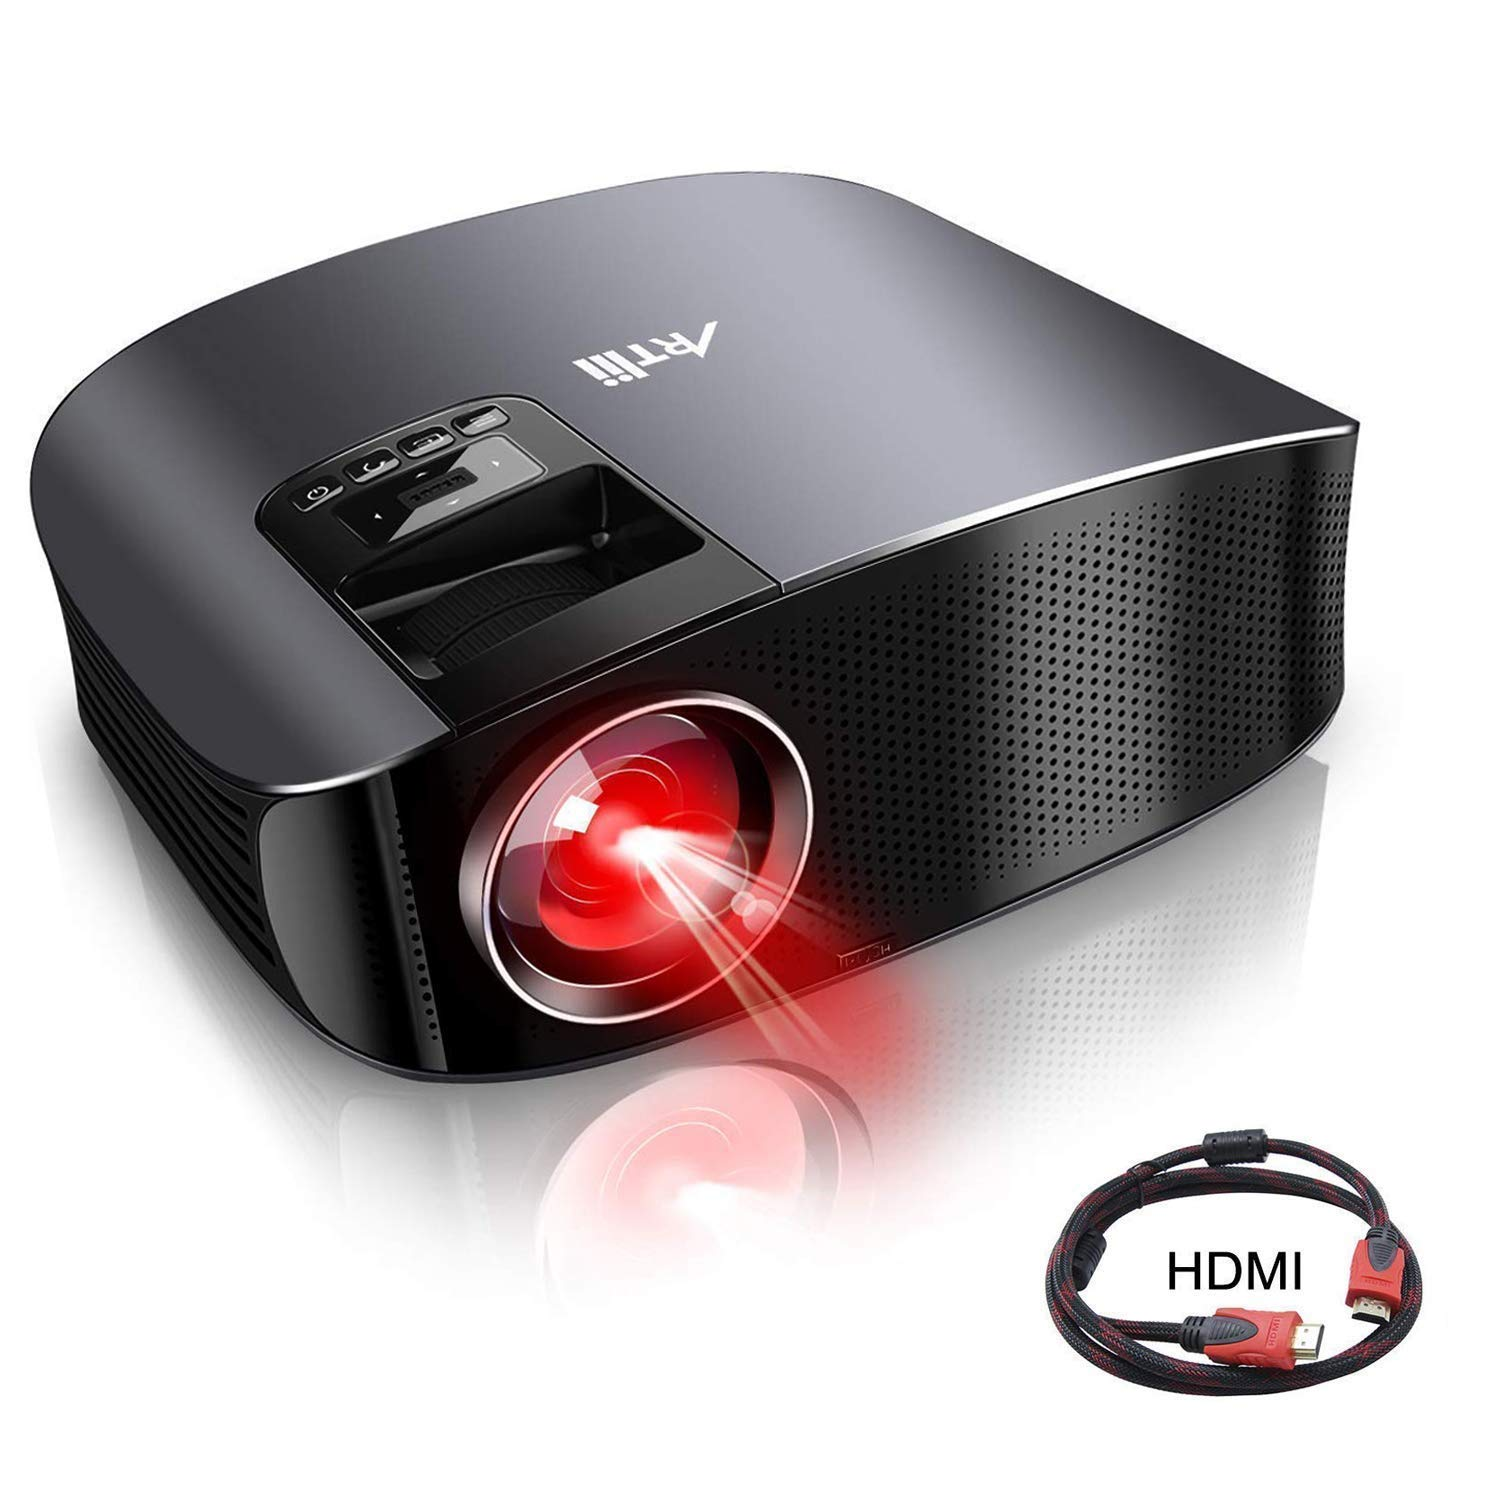 "Movie Projector - Artlii 4000 Lux Full HD 1080P Support Projector, LED Projector with HiFi Stereo, Home Theater Projector w/ 200"" Projection Size,2 HDMI USB VGA for Movies Sports Nintendo Switch PS4"